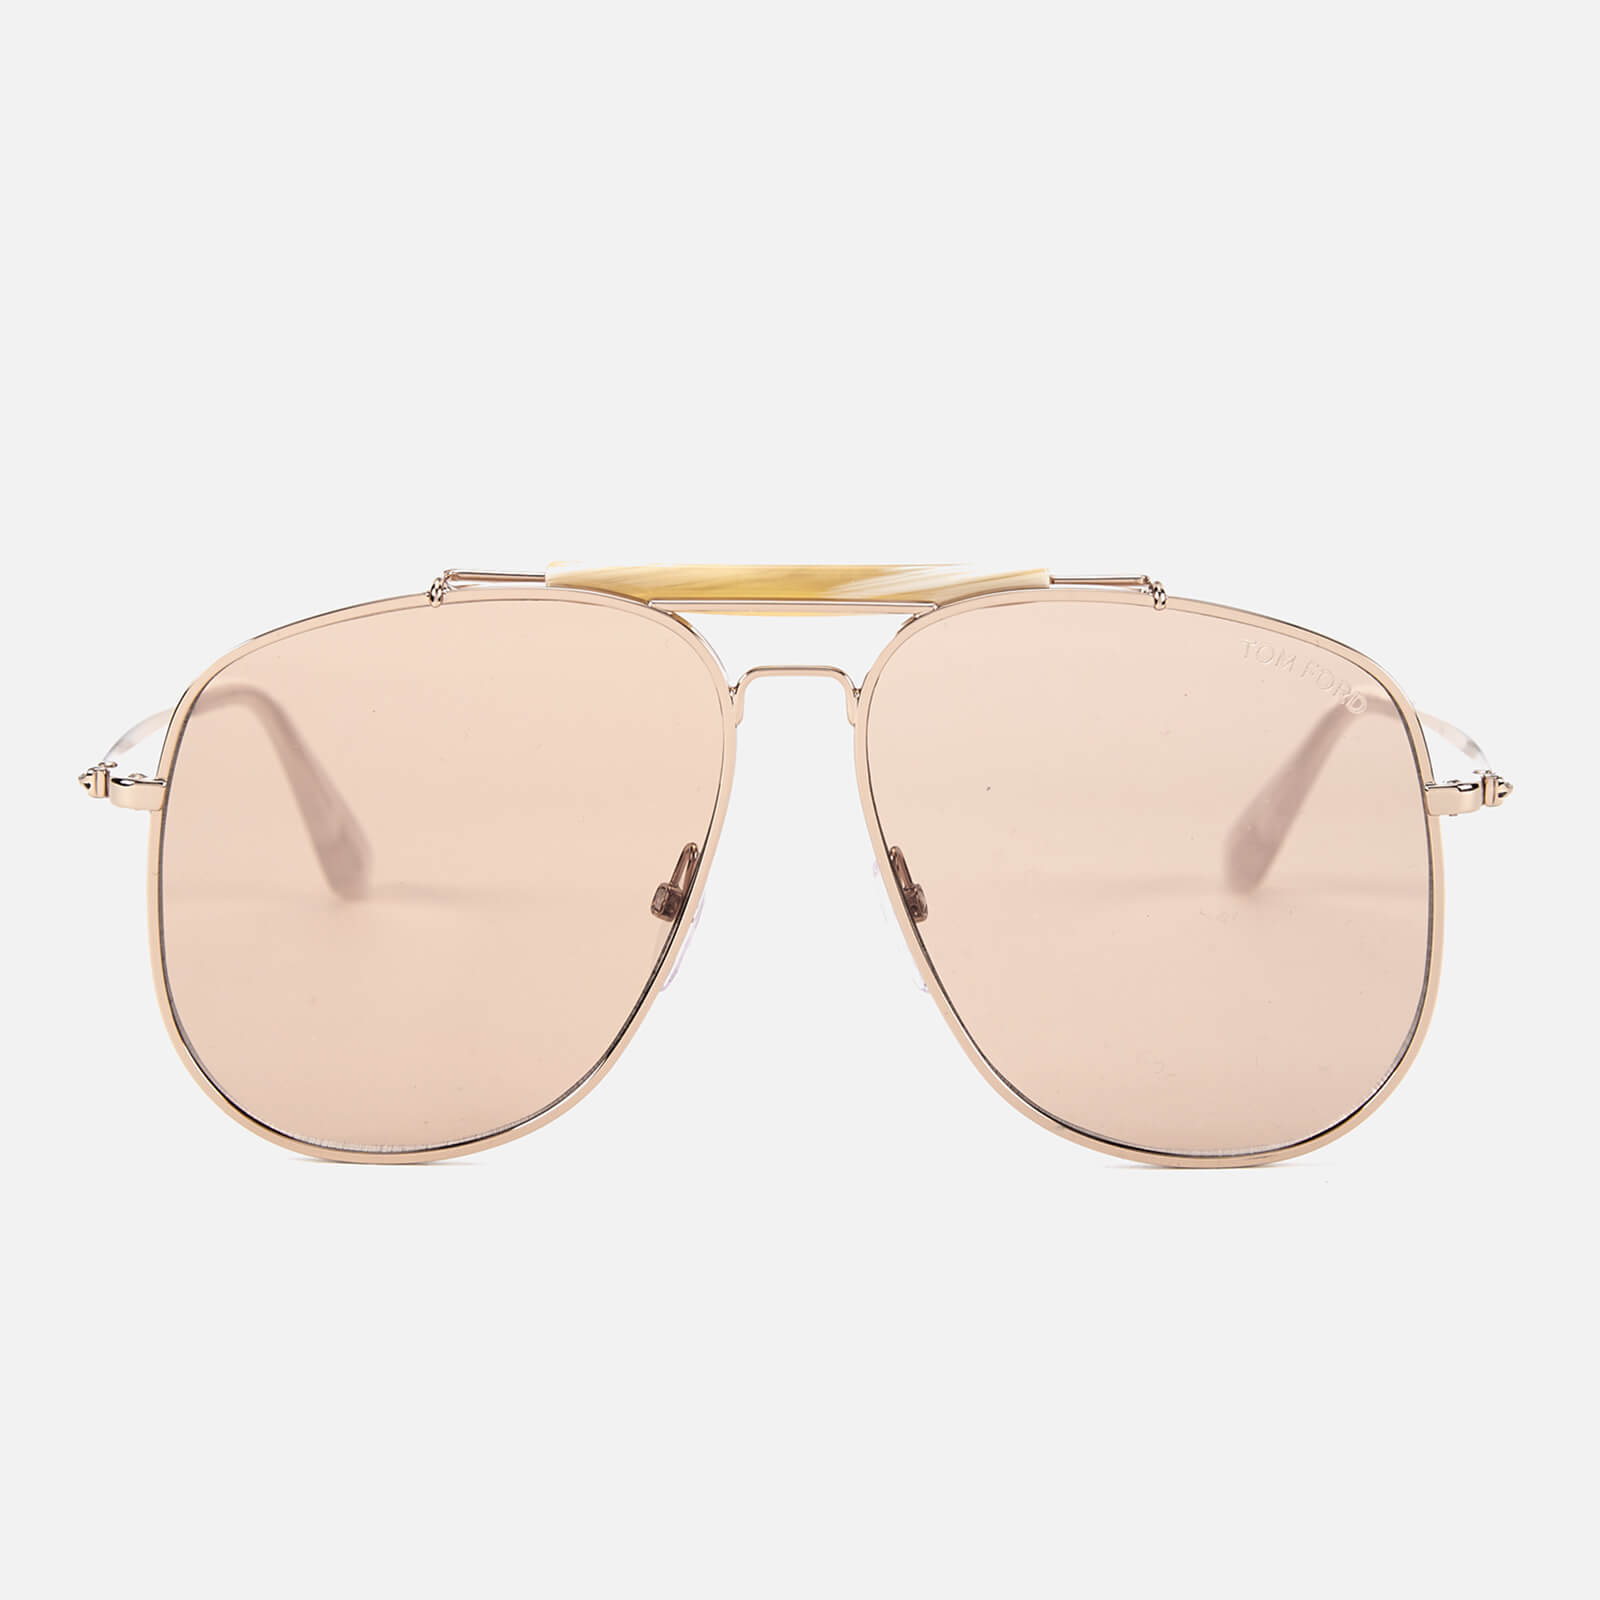 78eb5447fb8 Tom Ford Men s Connor Sunglasses - Shiny Rose Gold Violet - Free UK  Delivery over £50